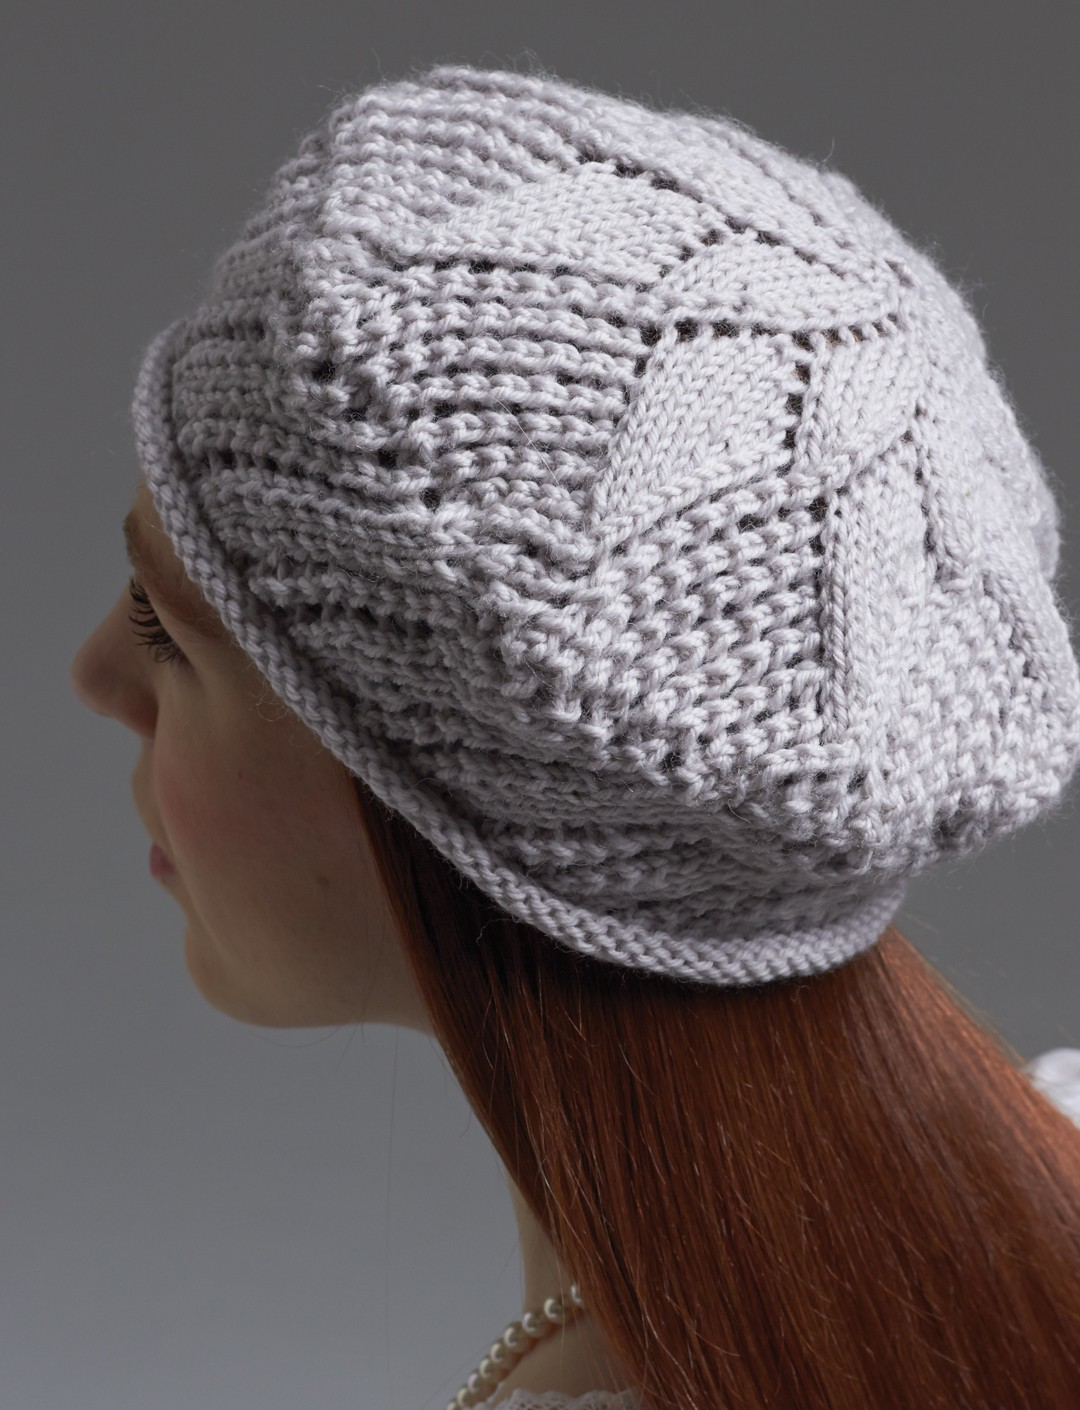 Patons Lace Beret, Knit Pattern Yarnspirations